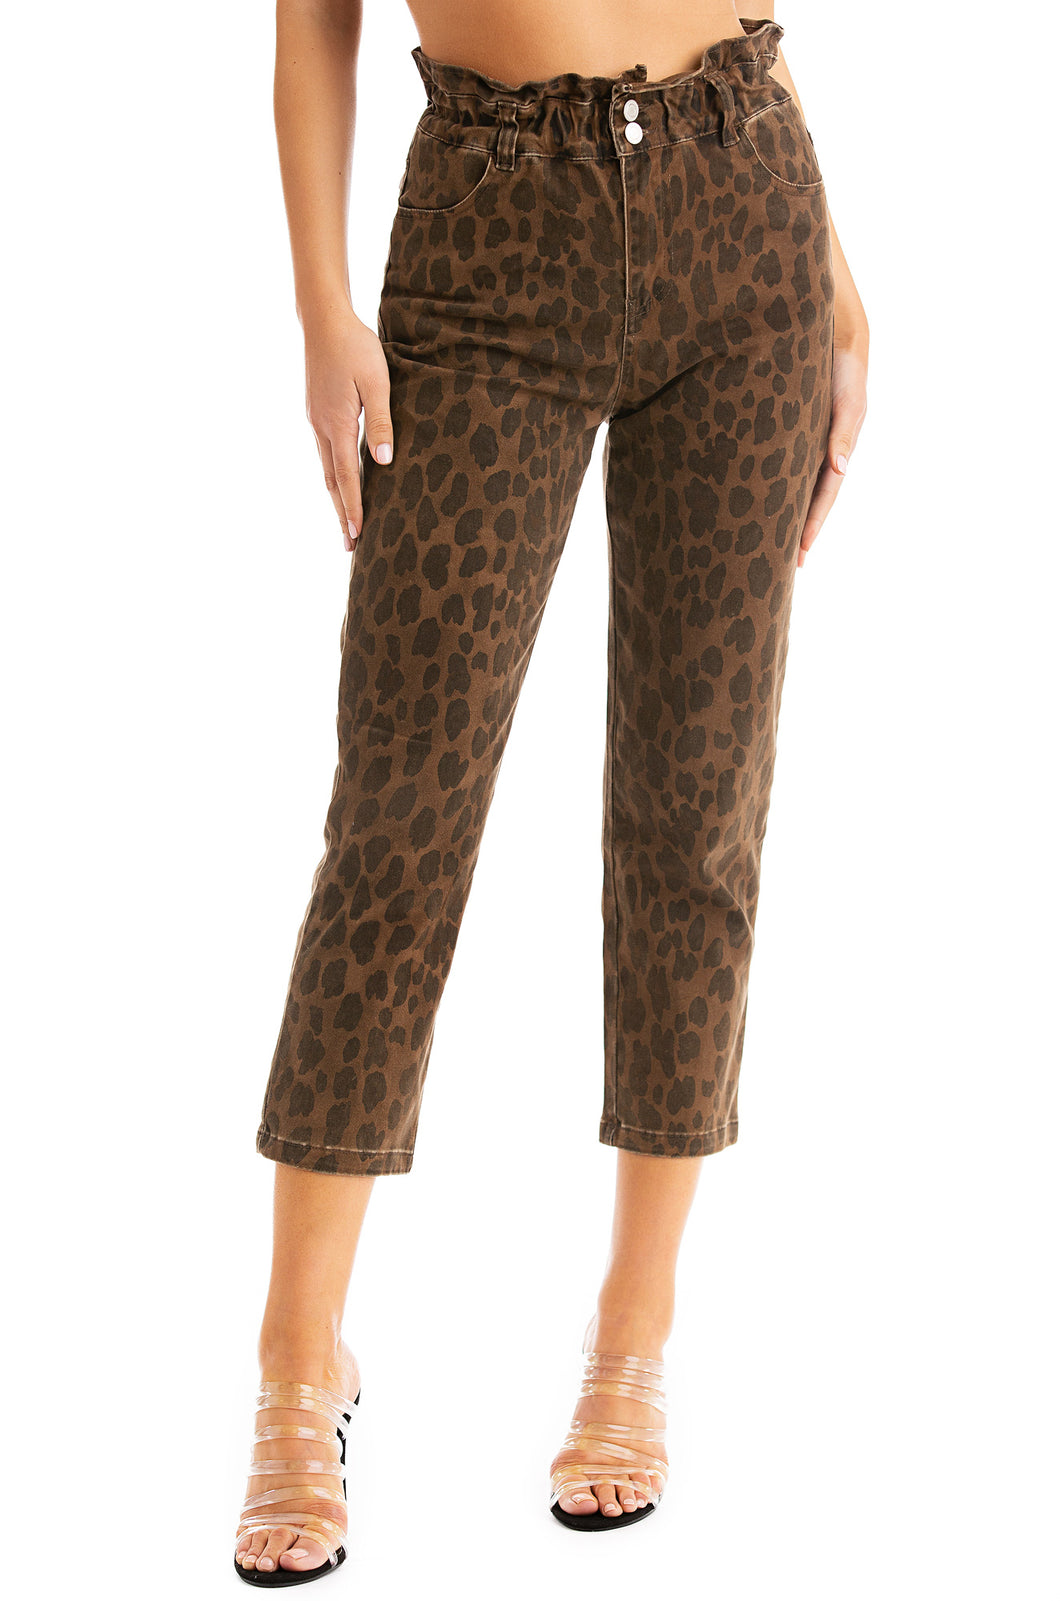 Put In Work Jeans - Leopard